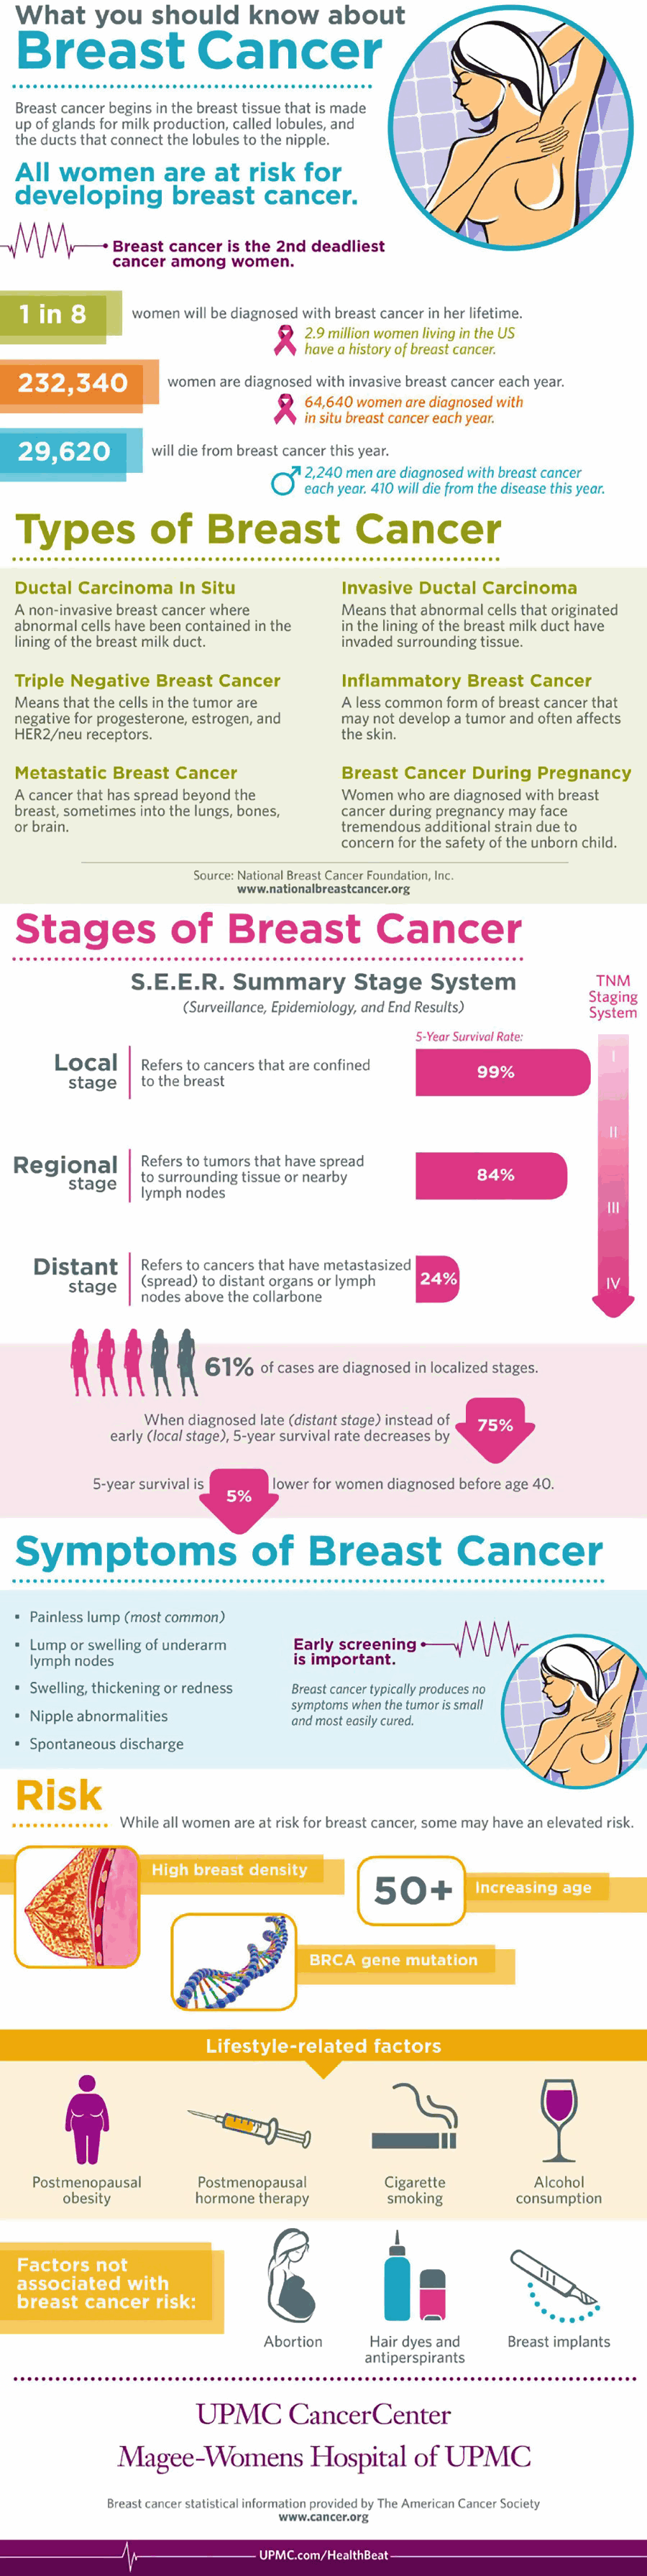 What You Should Know About Breast Cancer Infographic